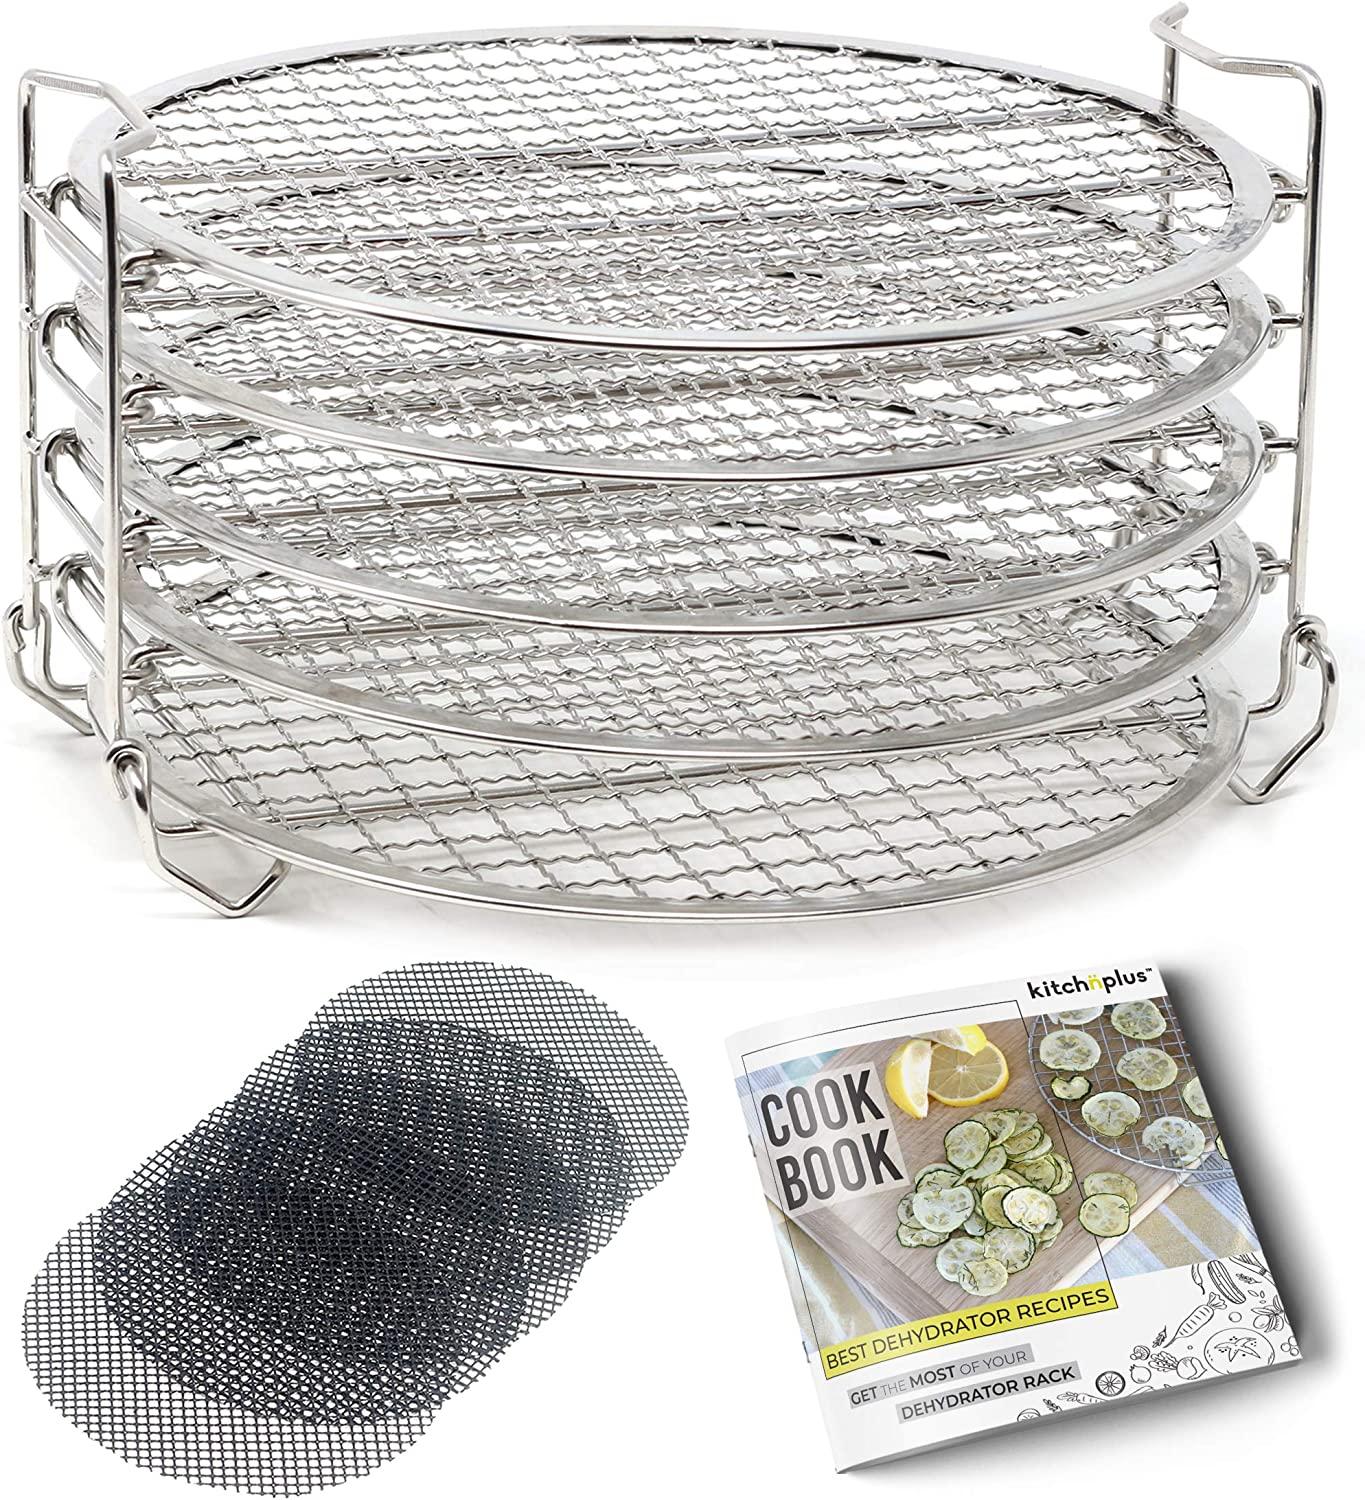 Kitchnplus Dehydrator Rack Stainless Steel Stand. Compatible with Ninja Foodi 6.5 and 8 Quart and Instant Pot 8 Qt Pressure Cooker. Includes Non-Stick Baking Sheets Accessories and Dehydrating Cookbook